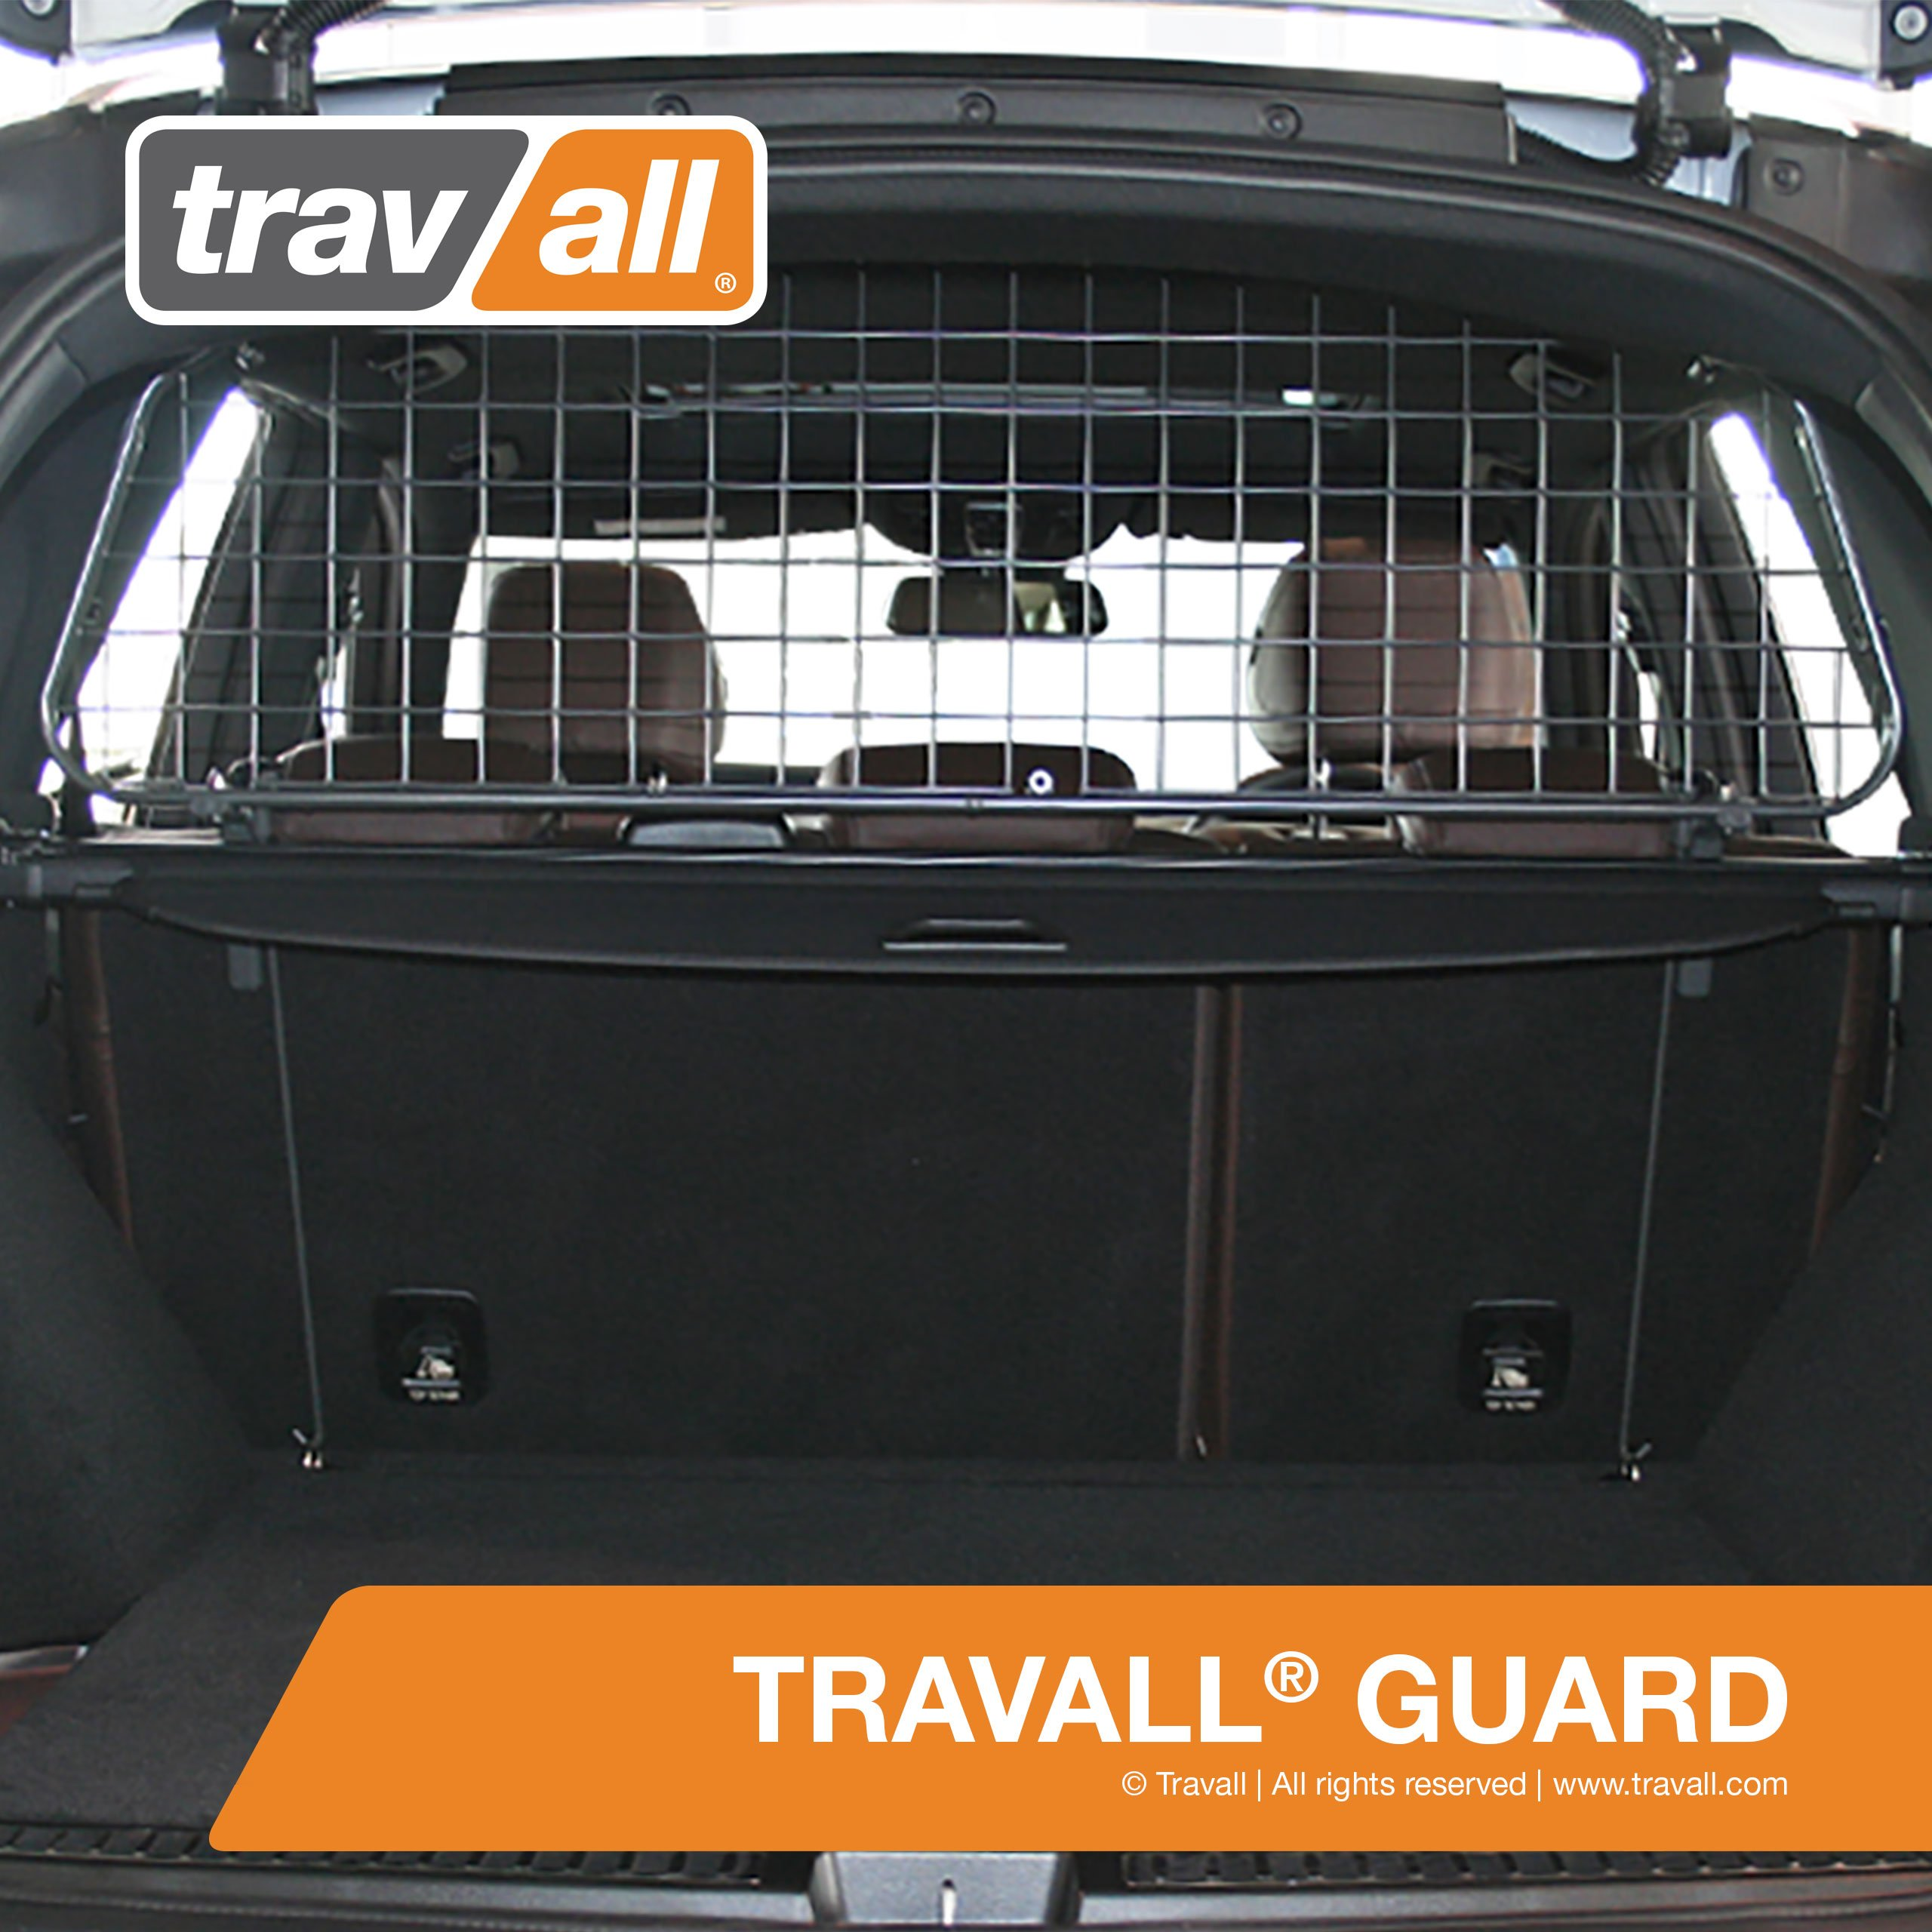 Travall Guard for MERCEDES BENZ GLE-Class (2015-Current) Also for Mercedes Benz M-Class (2011-2015) Mercedes Benz GLE 63 S AMG (2015-Current) TDG1369 - Removable Steel Pet Barrier